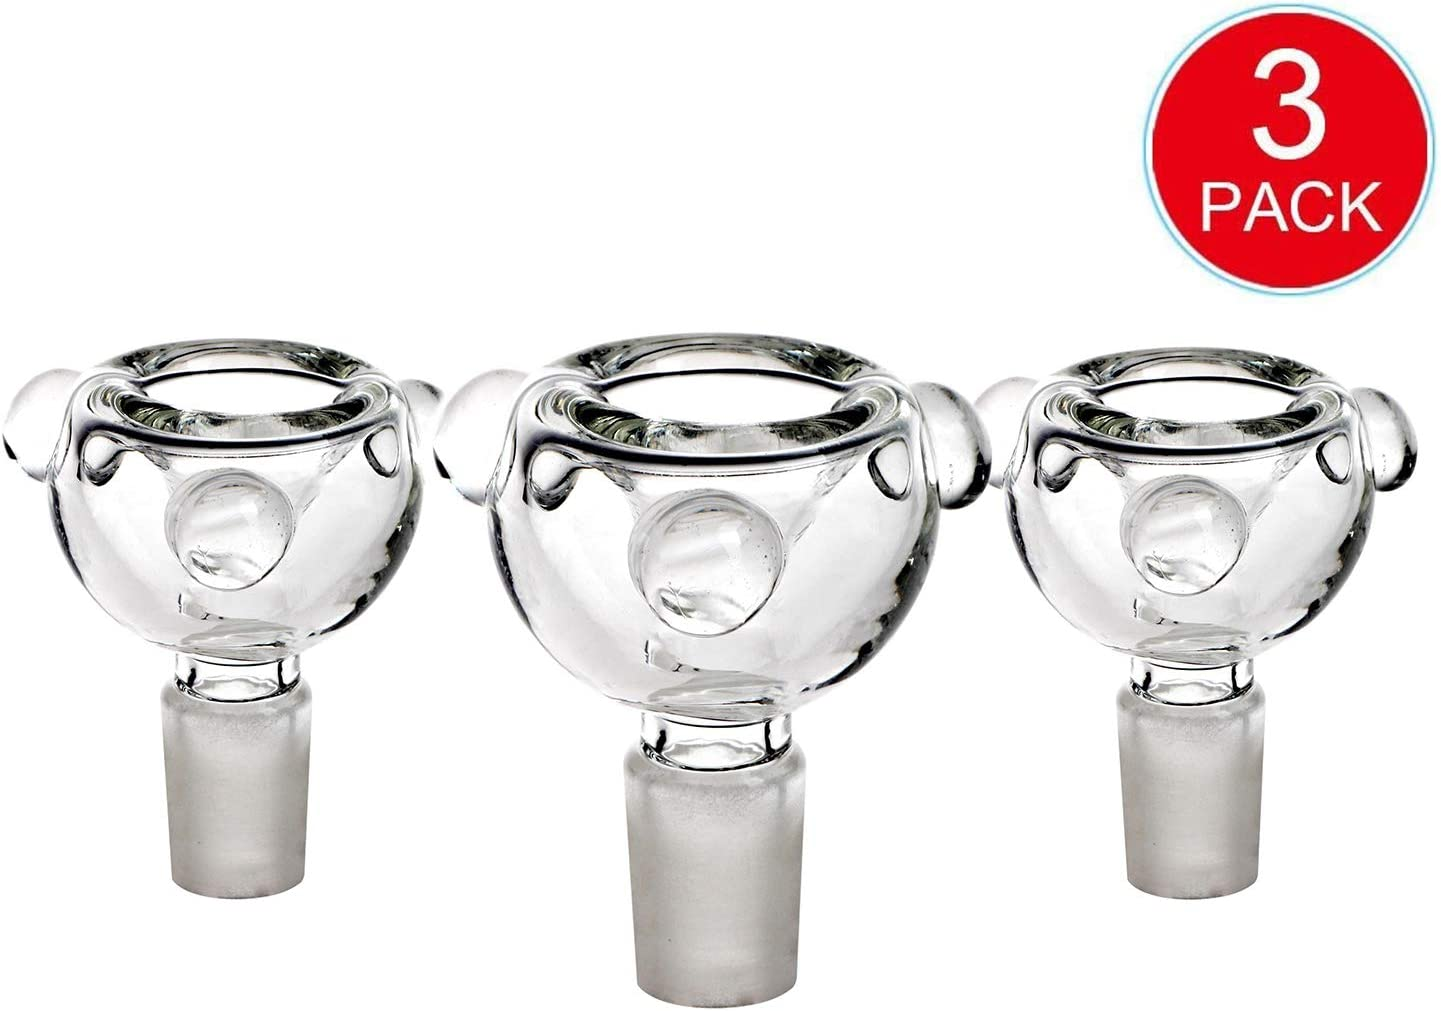 Handmade Stained Water Bottle Gift for a Friend Bowl Spherical 14mm 3pack